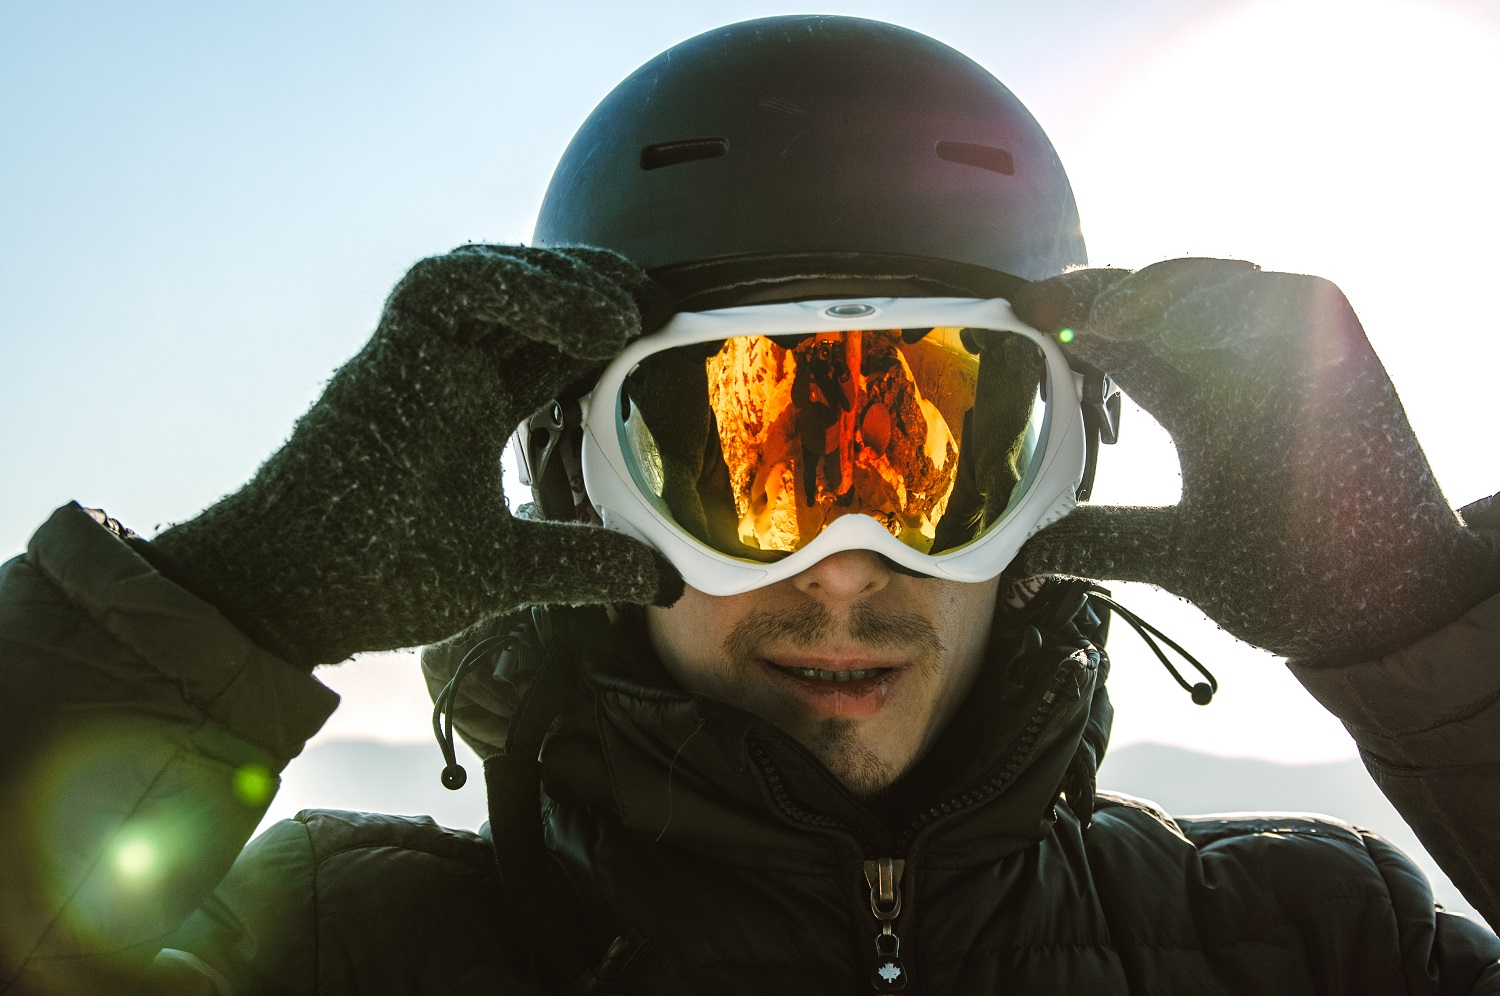 skier with glasses